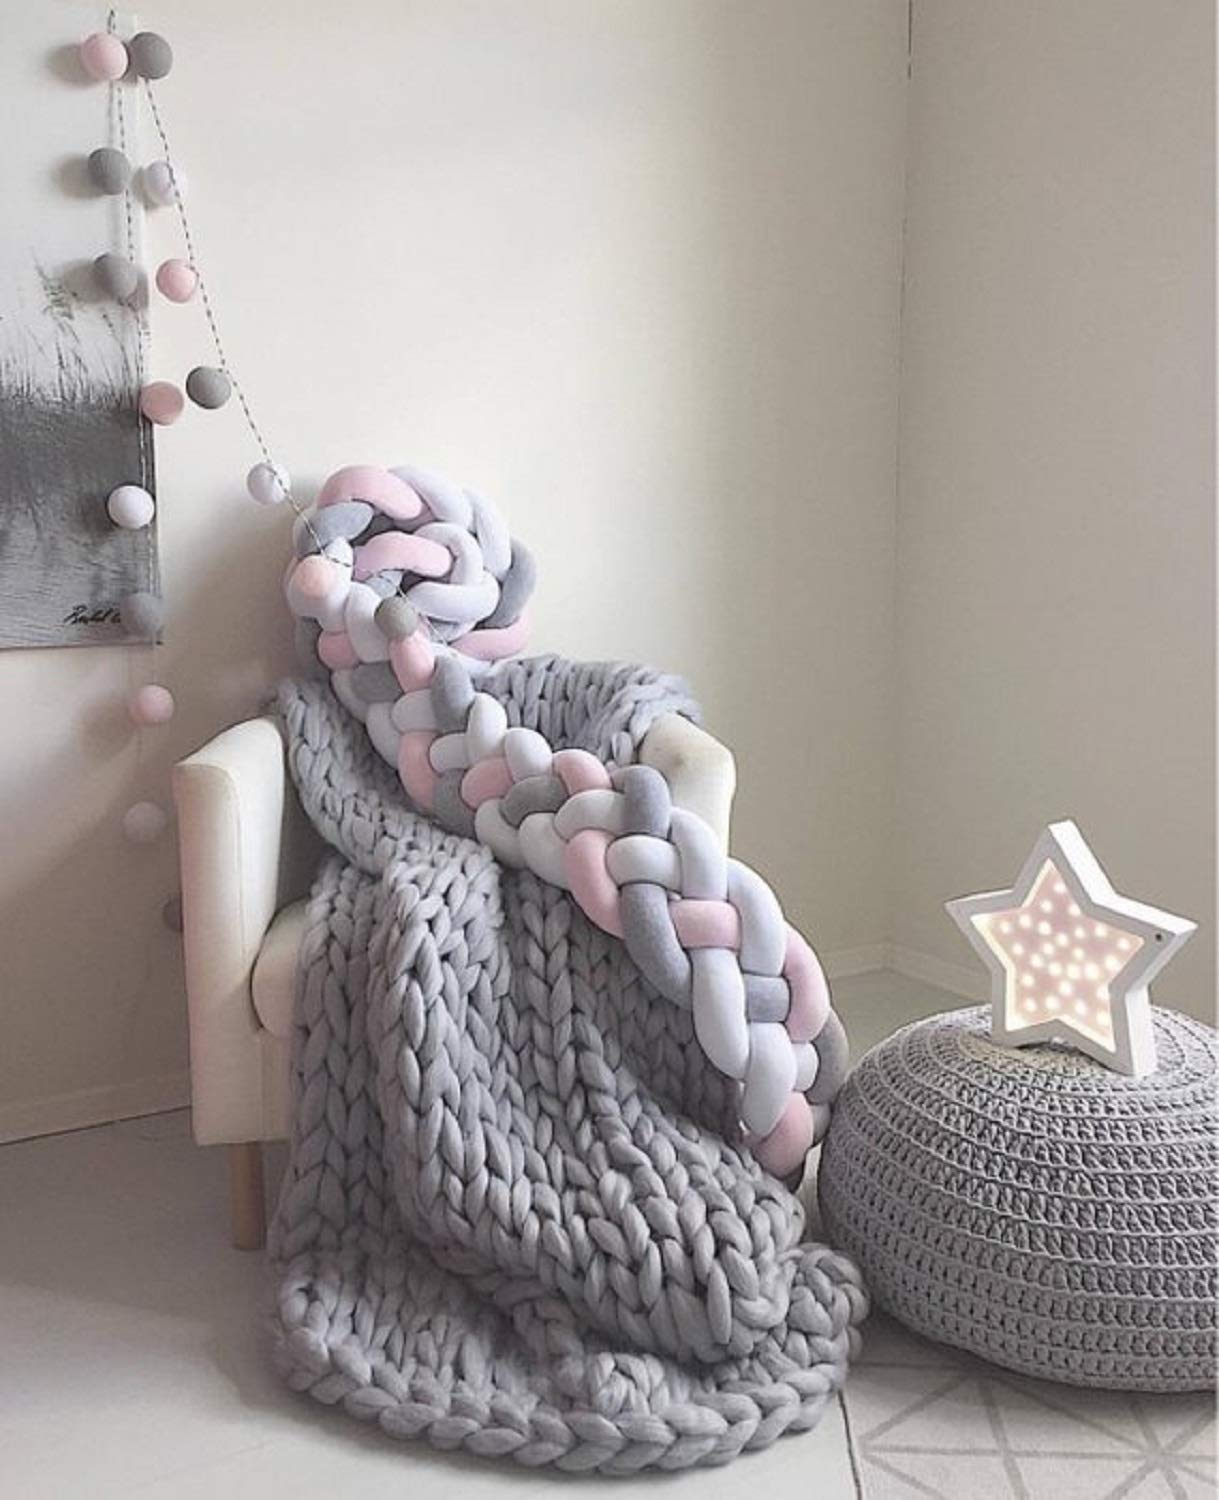 welltree Merino Soft Chunky Wool Yarn for Arm Knitted DIY Your Favorite Thick Blankets (Grey - 6.6 lbs) by welltree (Image #5)